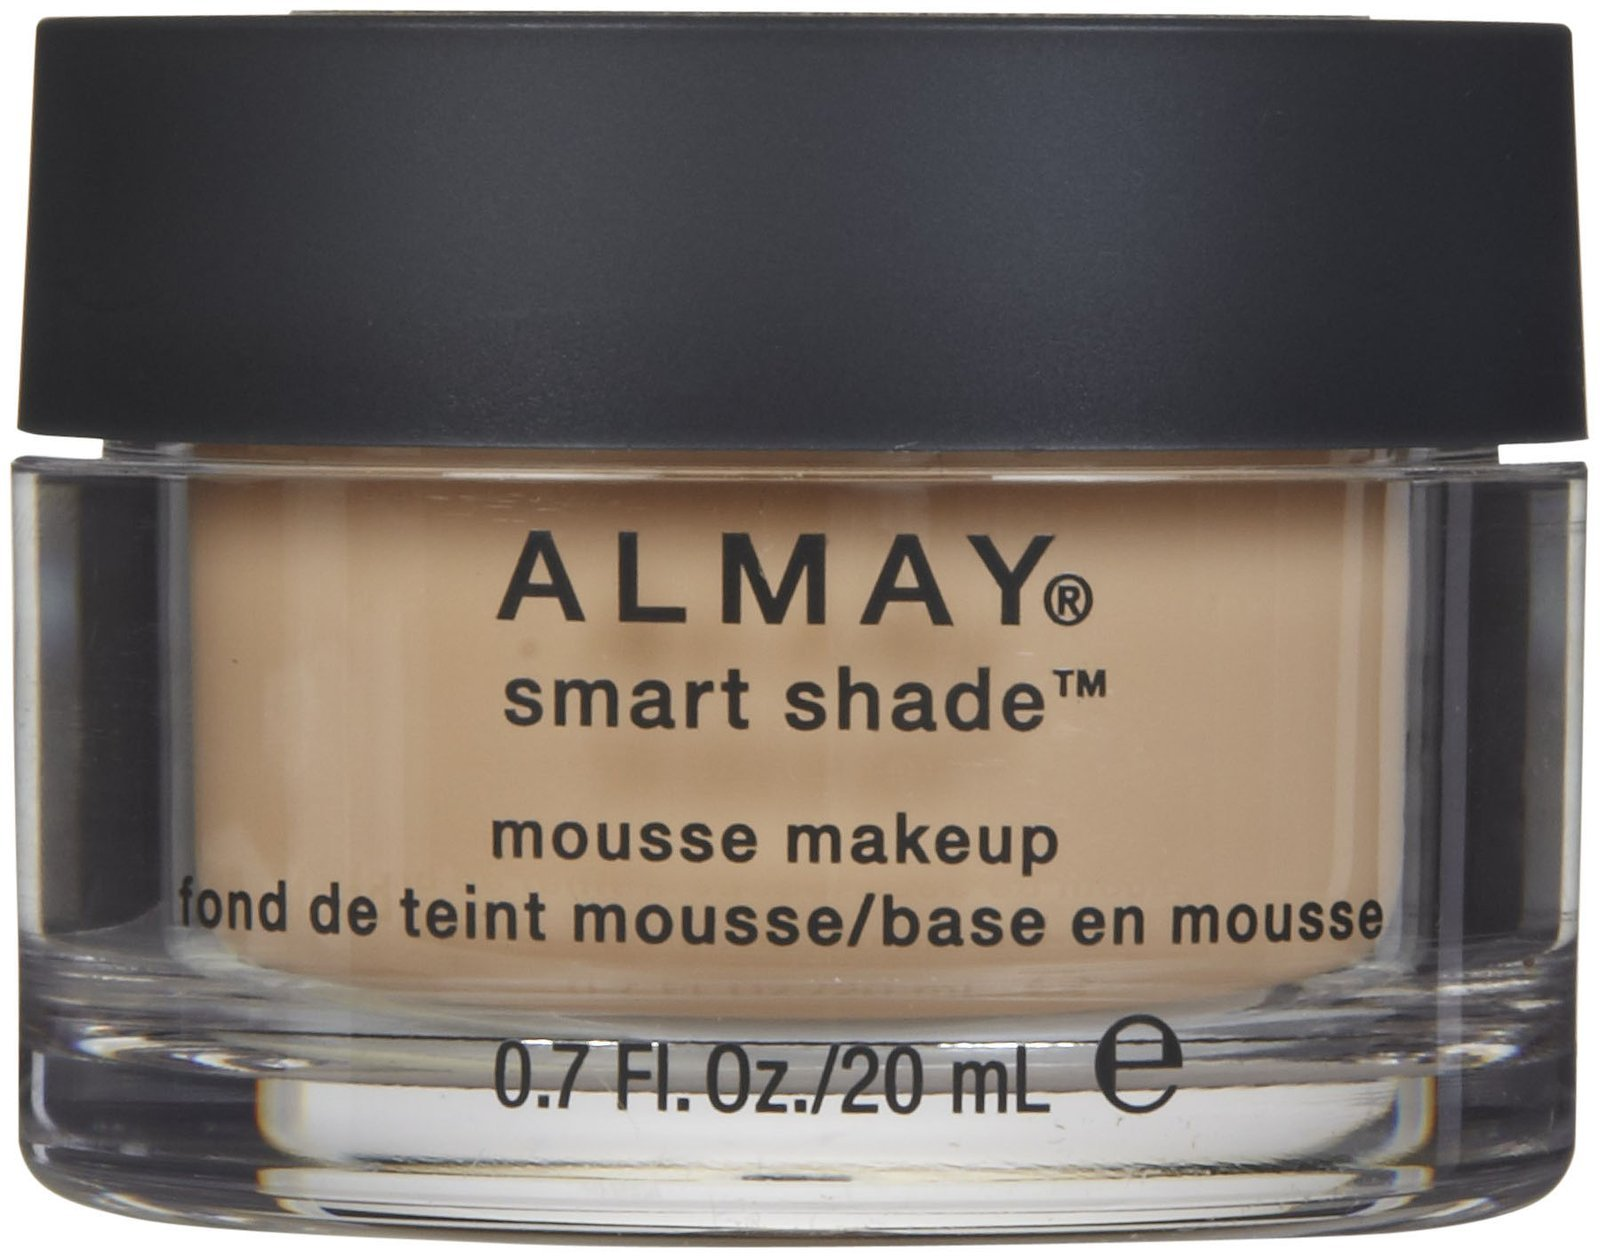 Primary image for Almay Smart Shade Mousse Makeup, Medium/Deep 400, 0.17 Fluid Ounce